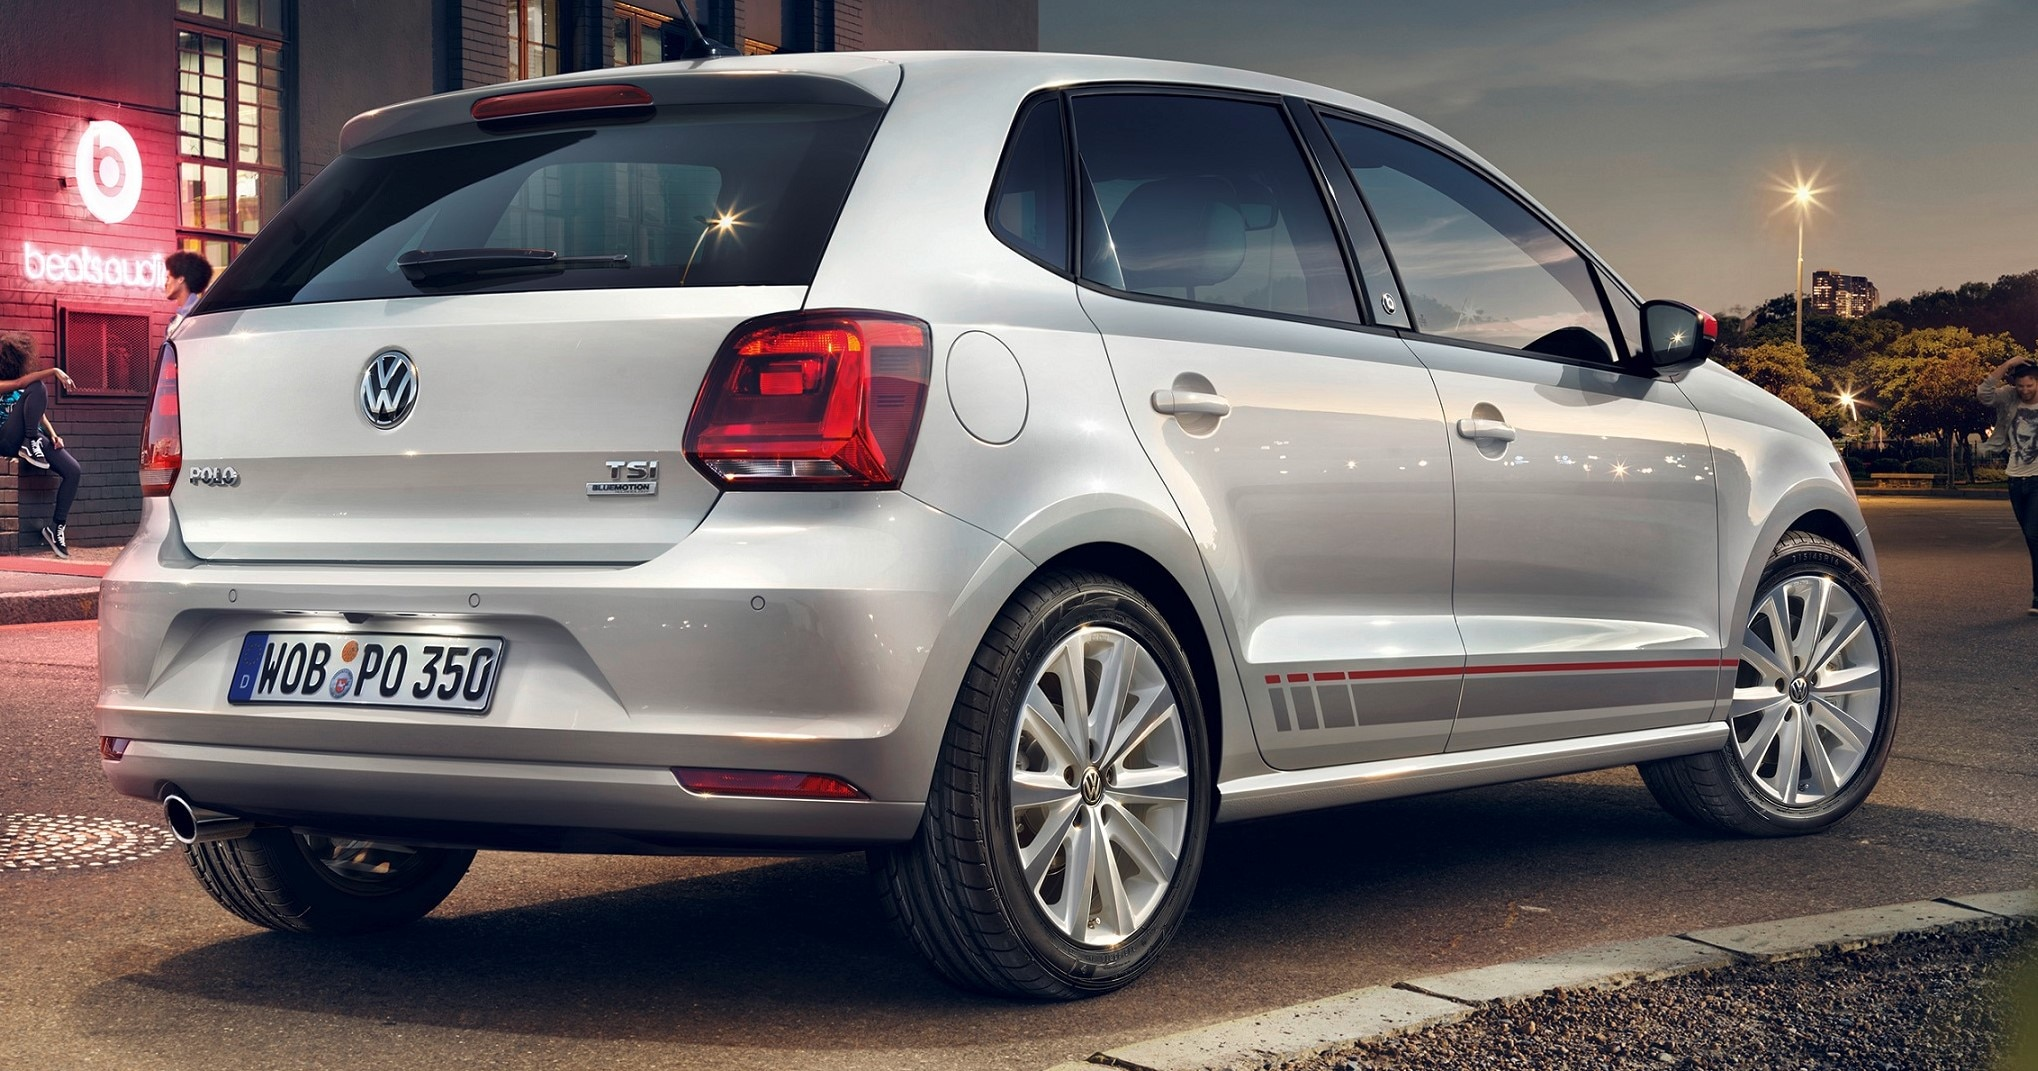 Volkswagen polo review motors plump for older polos though and there are some bigger turbo diesels available with similar power outputs and rear world economy figures publicscrutiny Choice Image